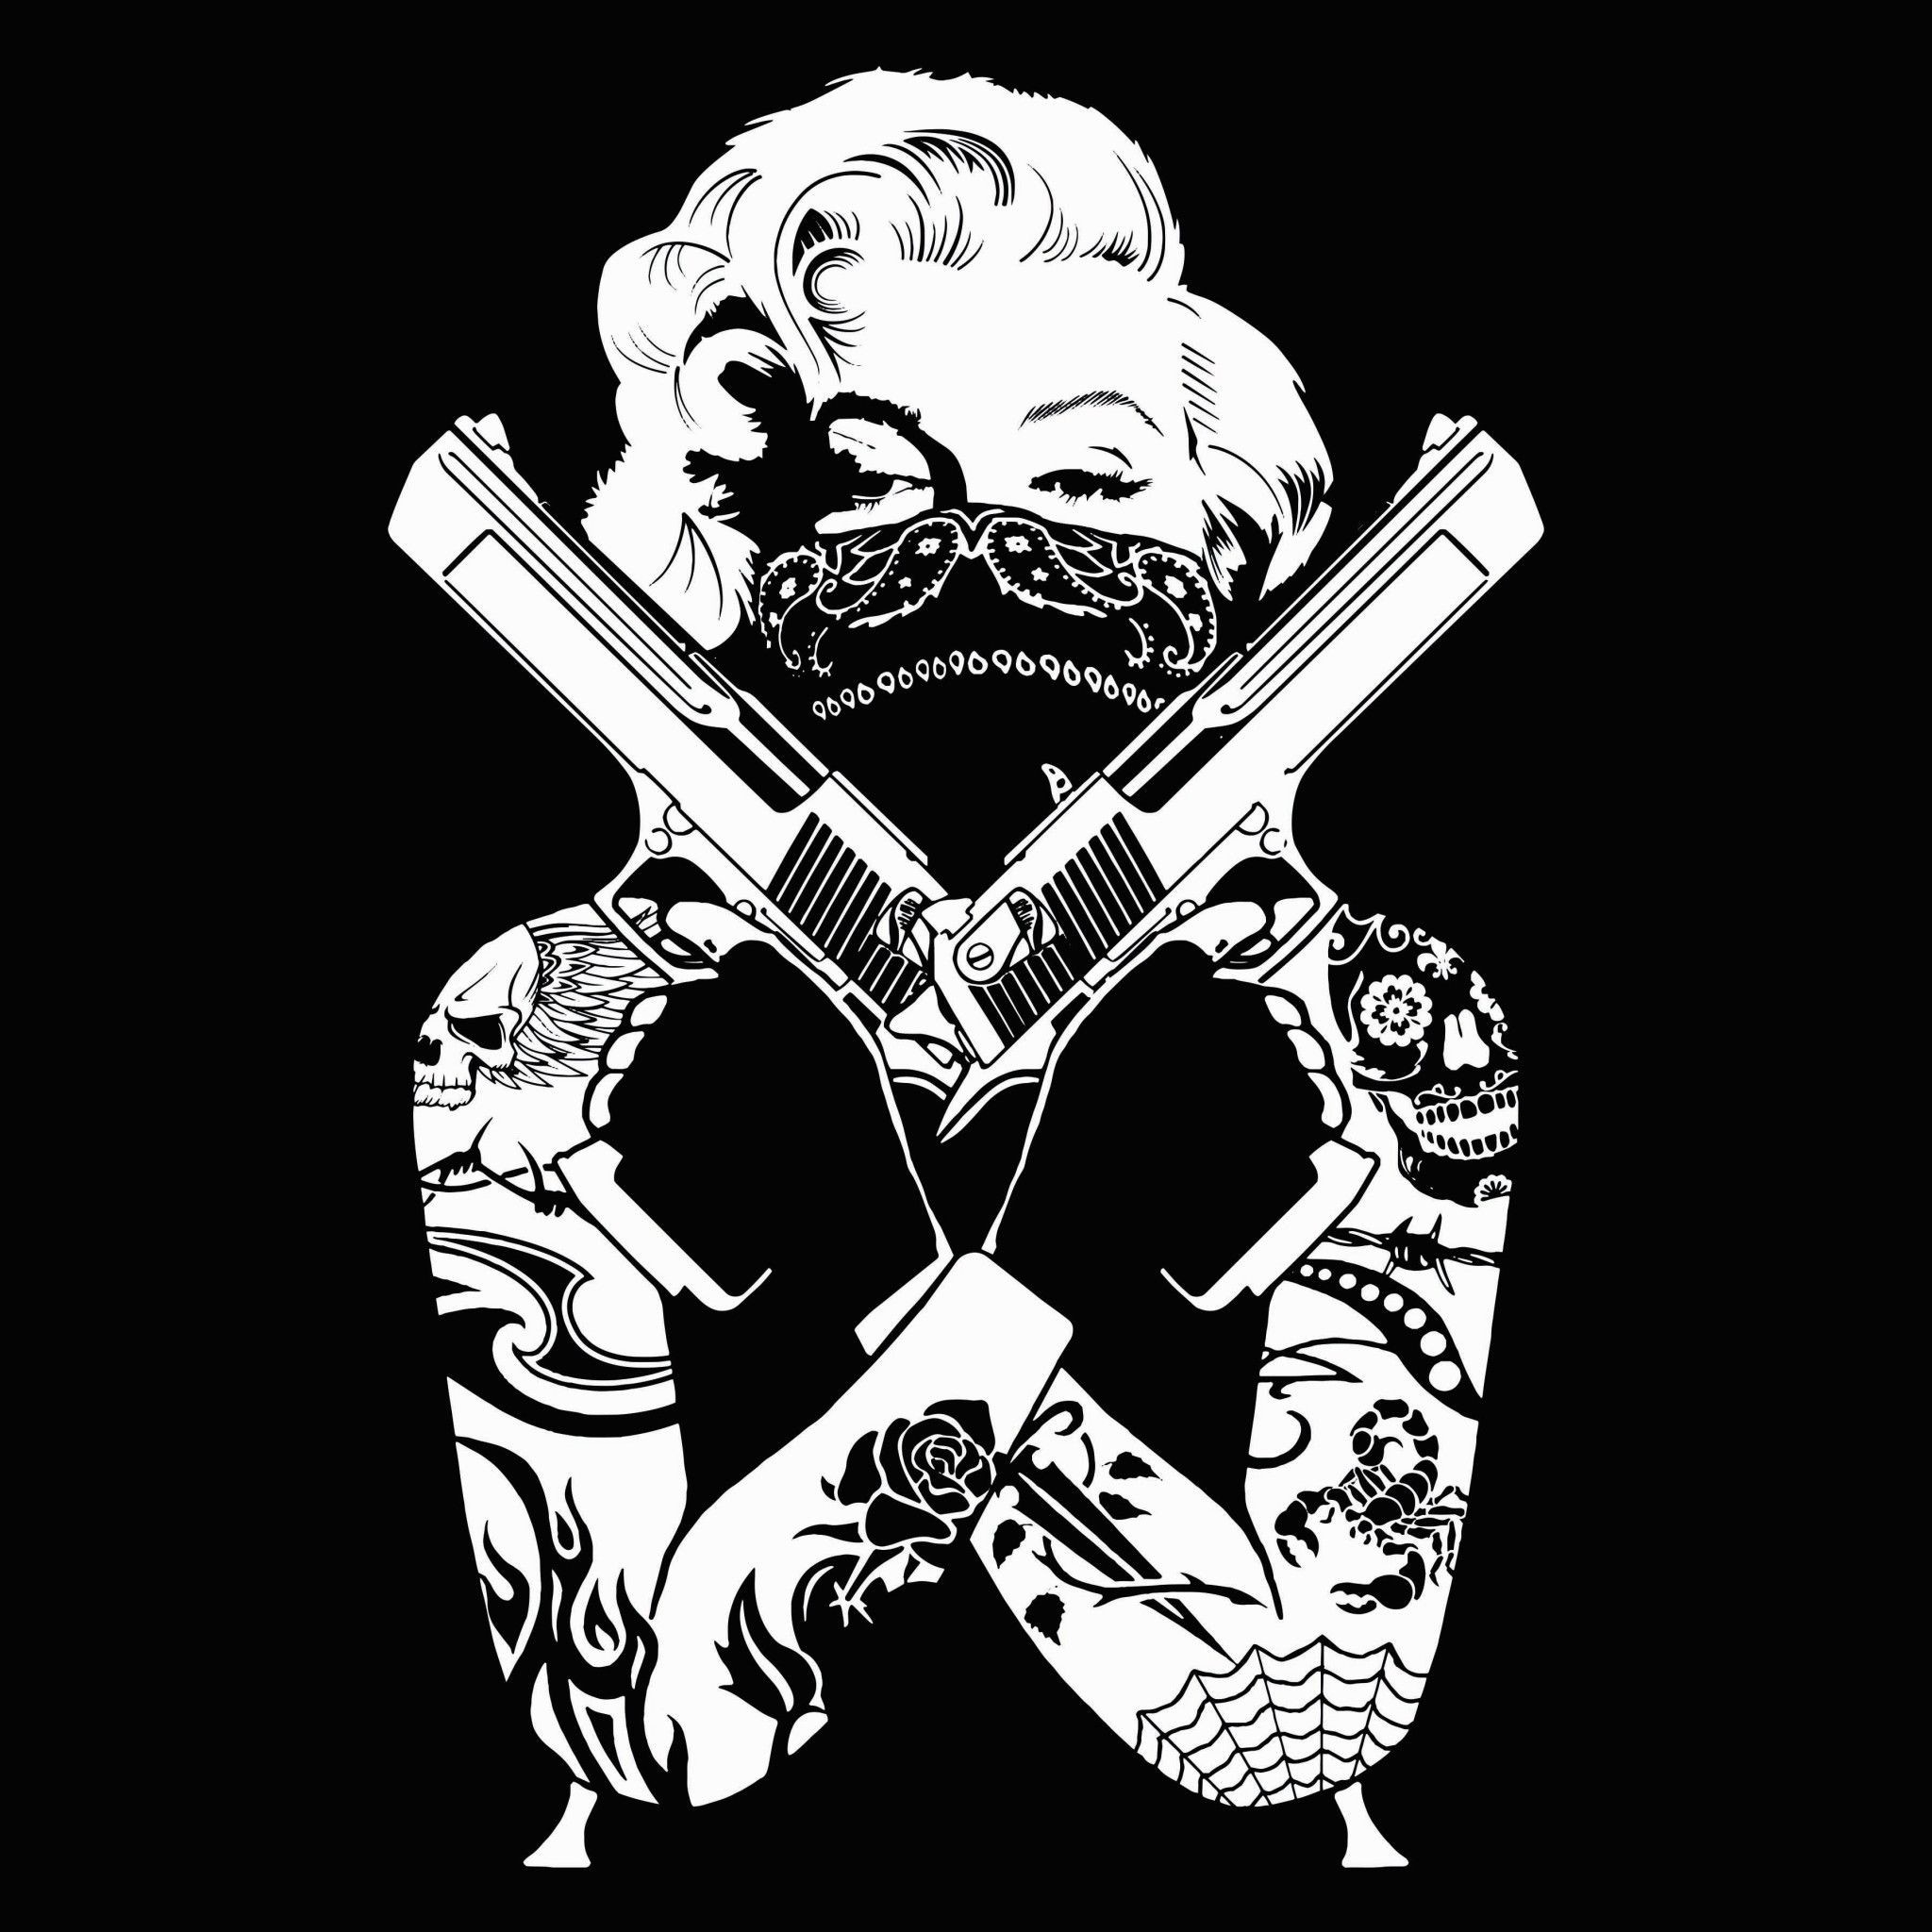 fa276ad15f494 2048x2048 1212x1600 Baby Gangster Love Art | Mexican Gangster Girls Drawings  | Ideas for .